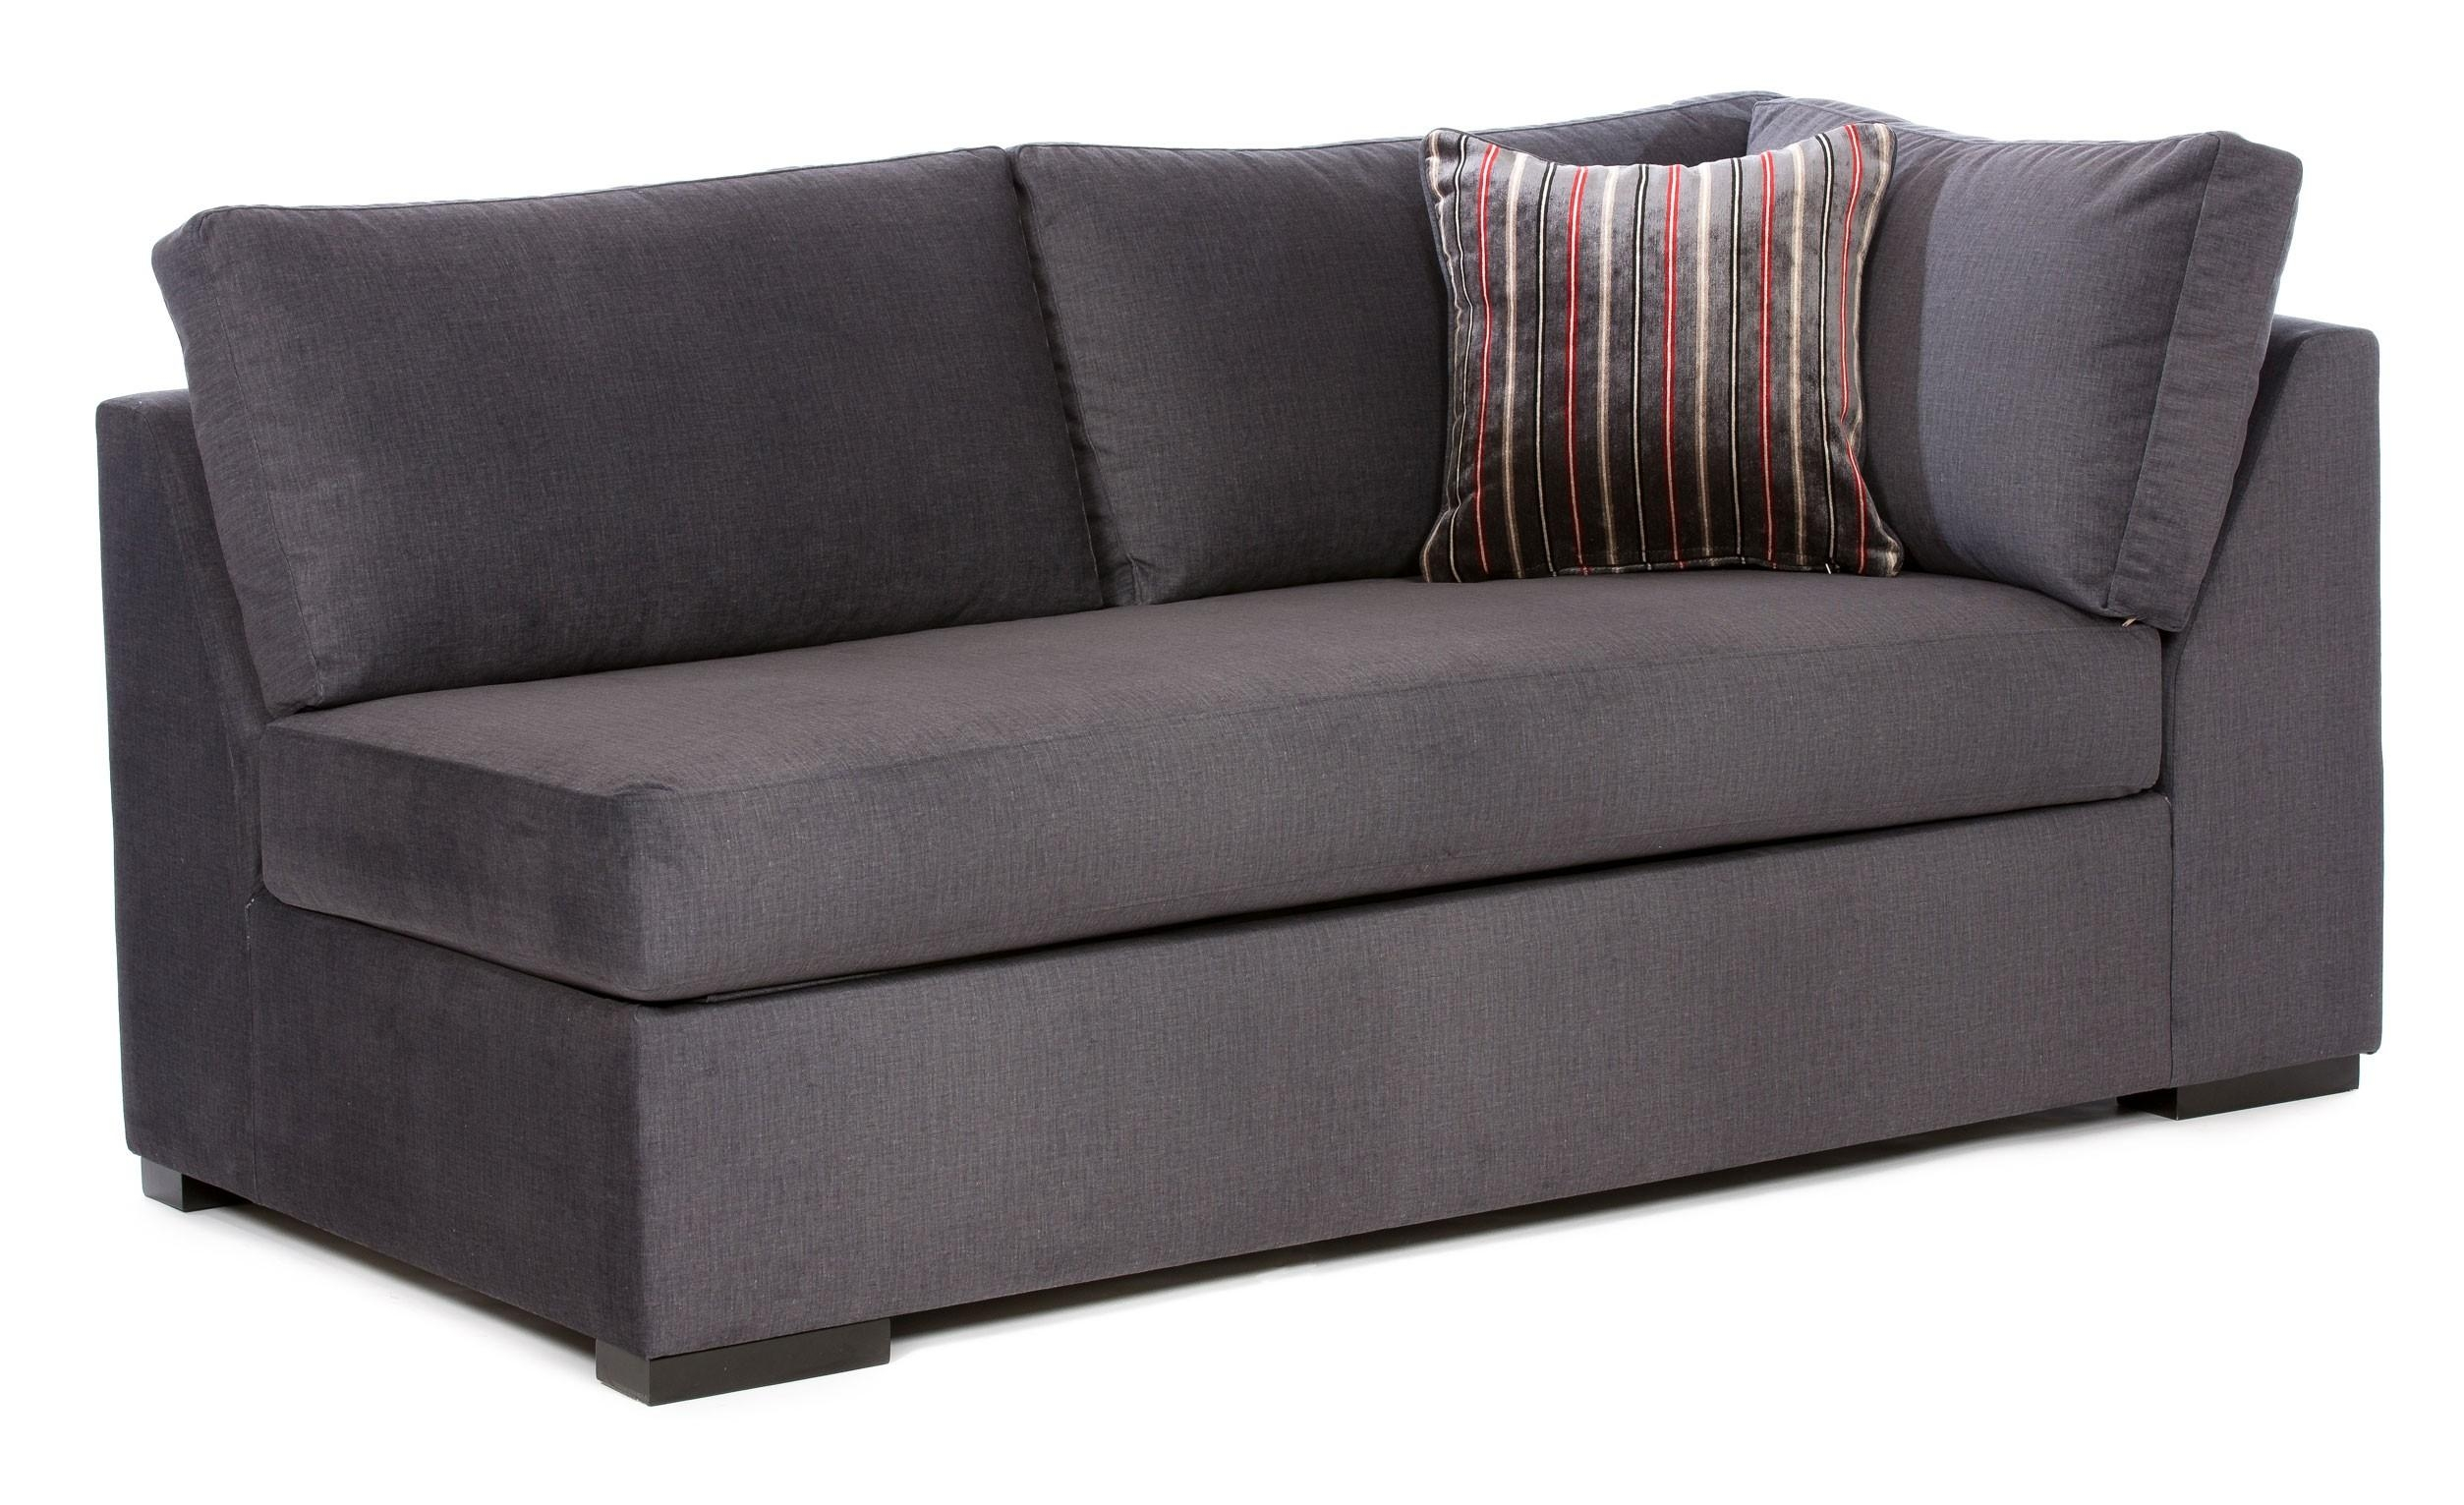 Sofa Bed With Chaise Lounge High Quality Nd5 | Umpsa 78 Sofas Inside Sofa Beds With Chaise Lounge (View 17 of 20)